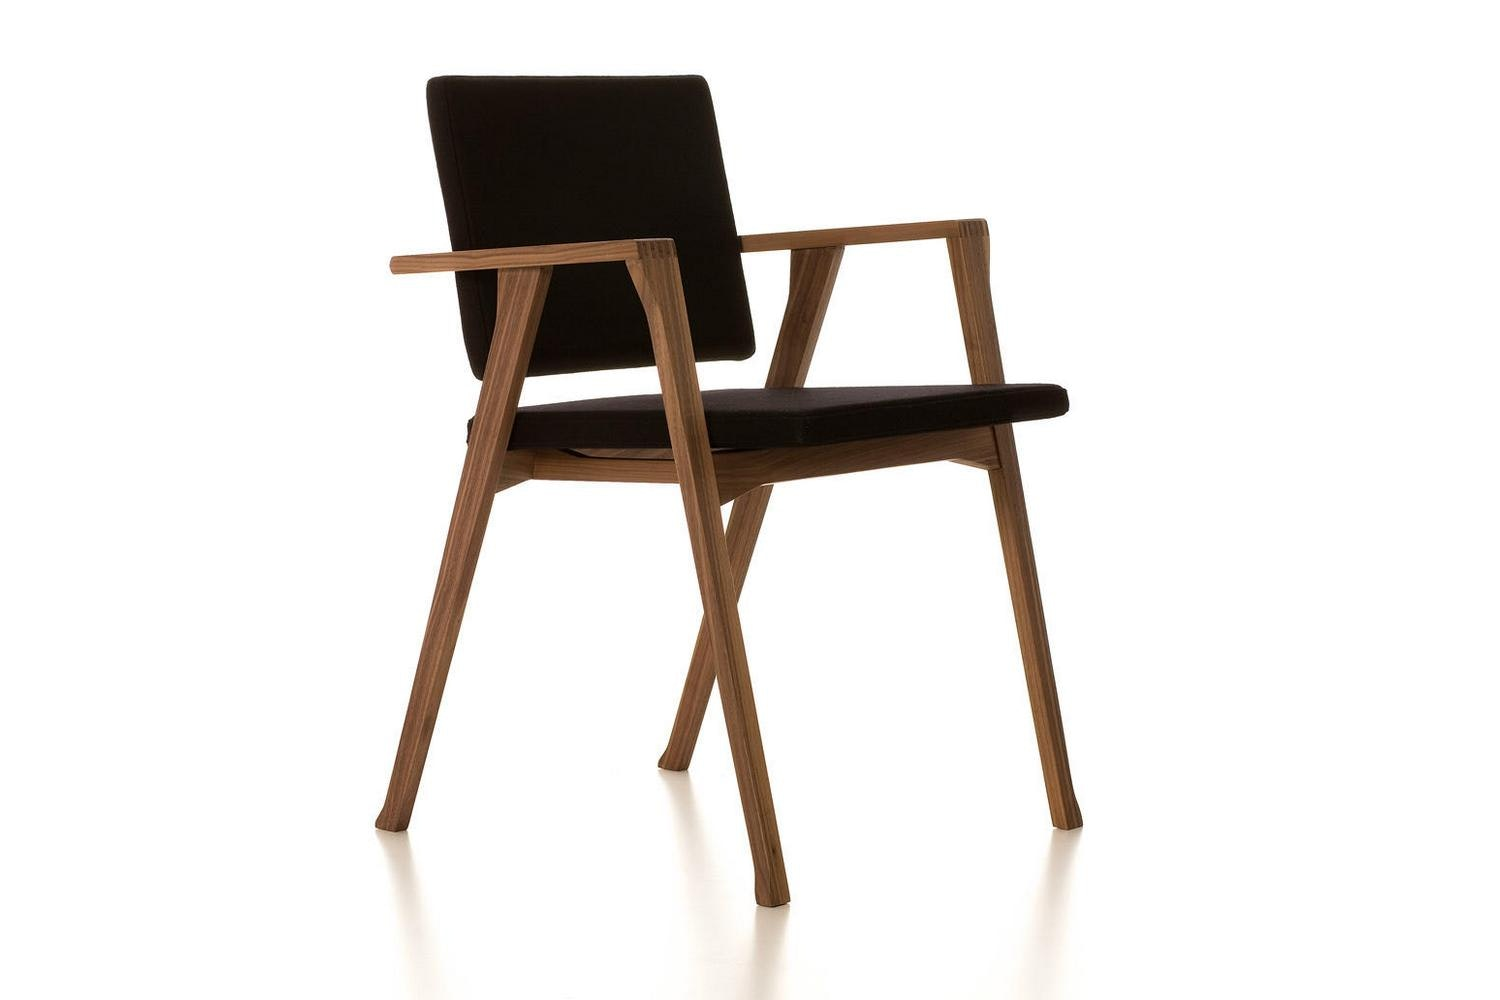 832 Luisa Chair by Franco Albini for Cassina